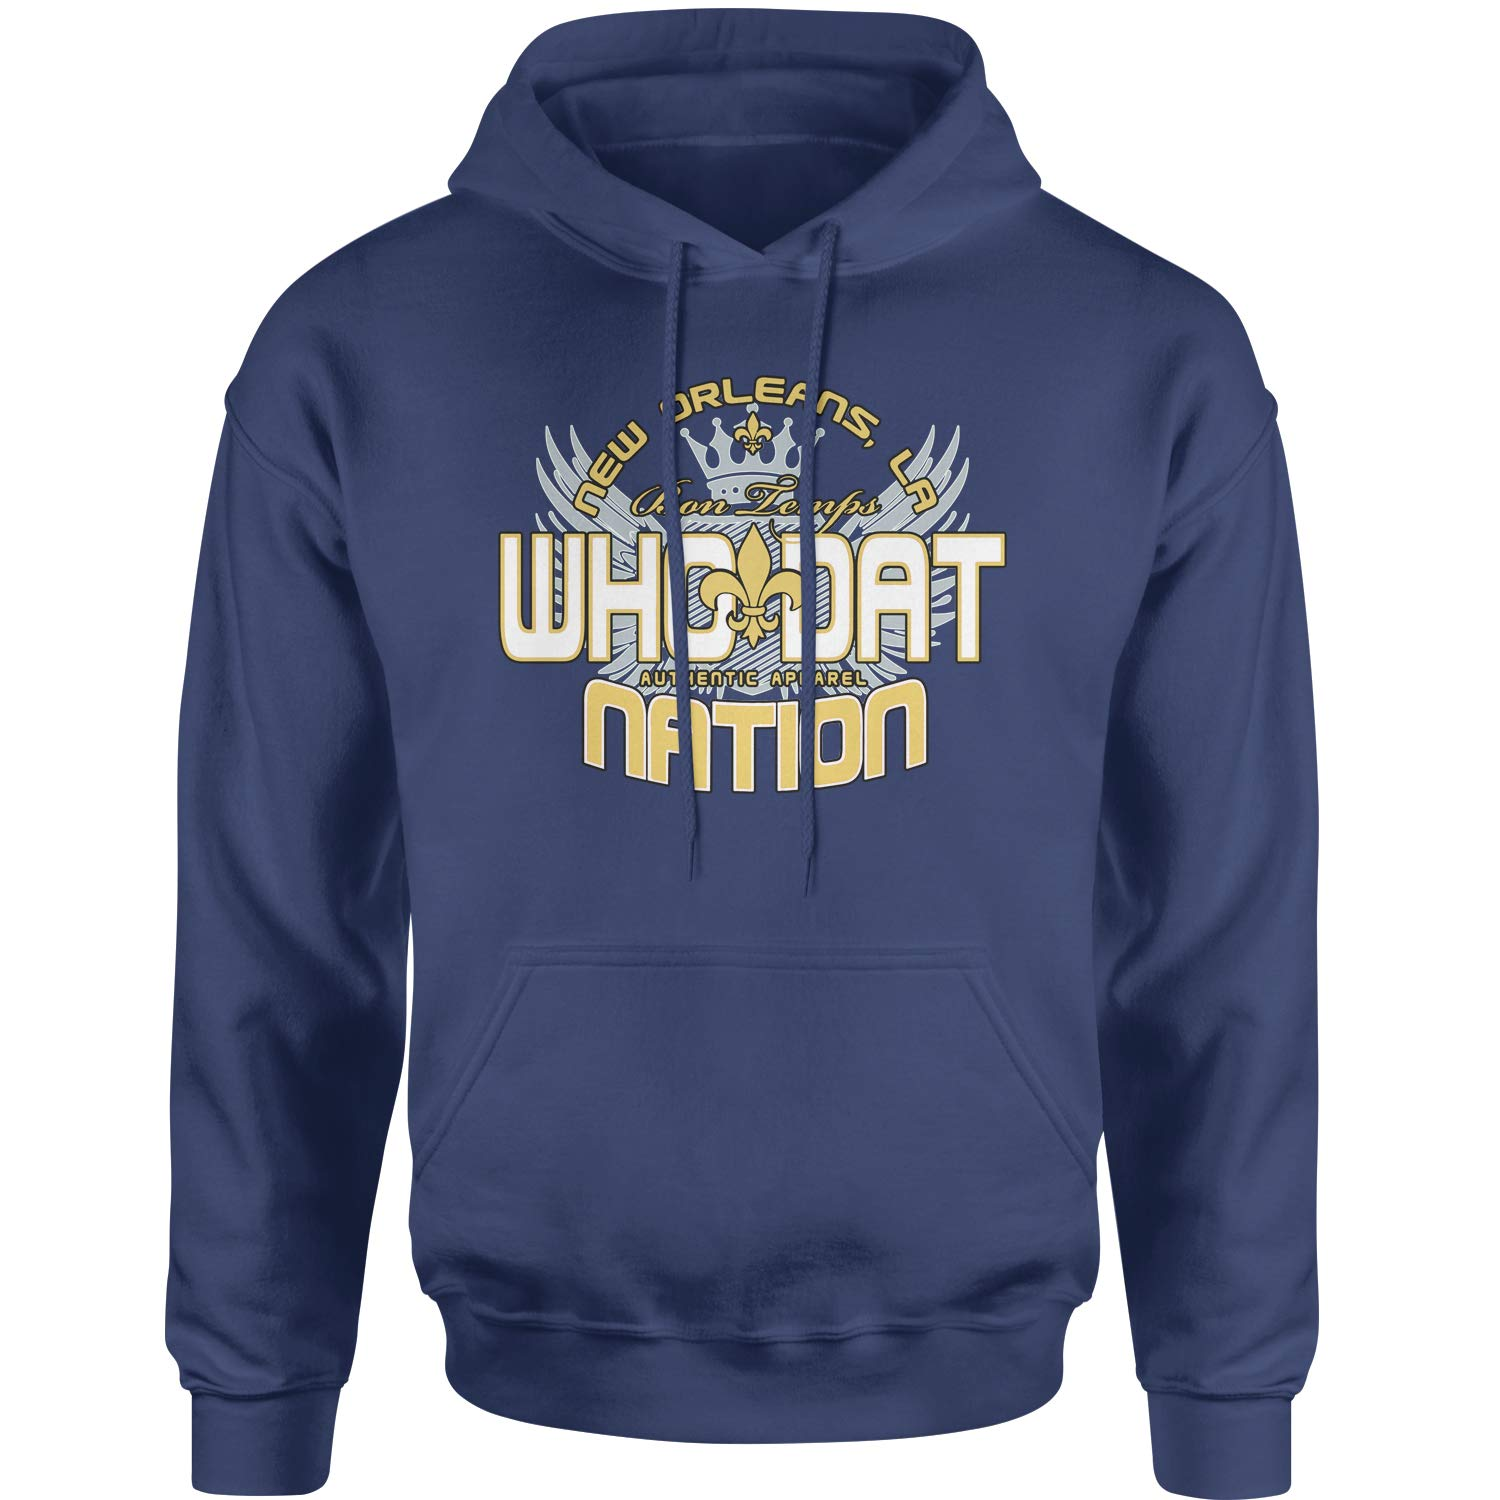 Unisex Adult Hoodie Color Expression Tees Who Dat Nation New Orleans